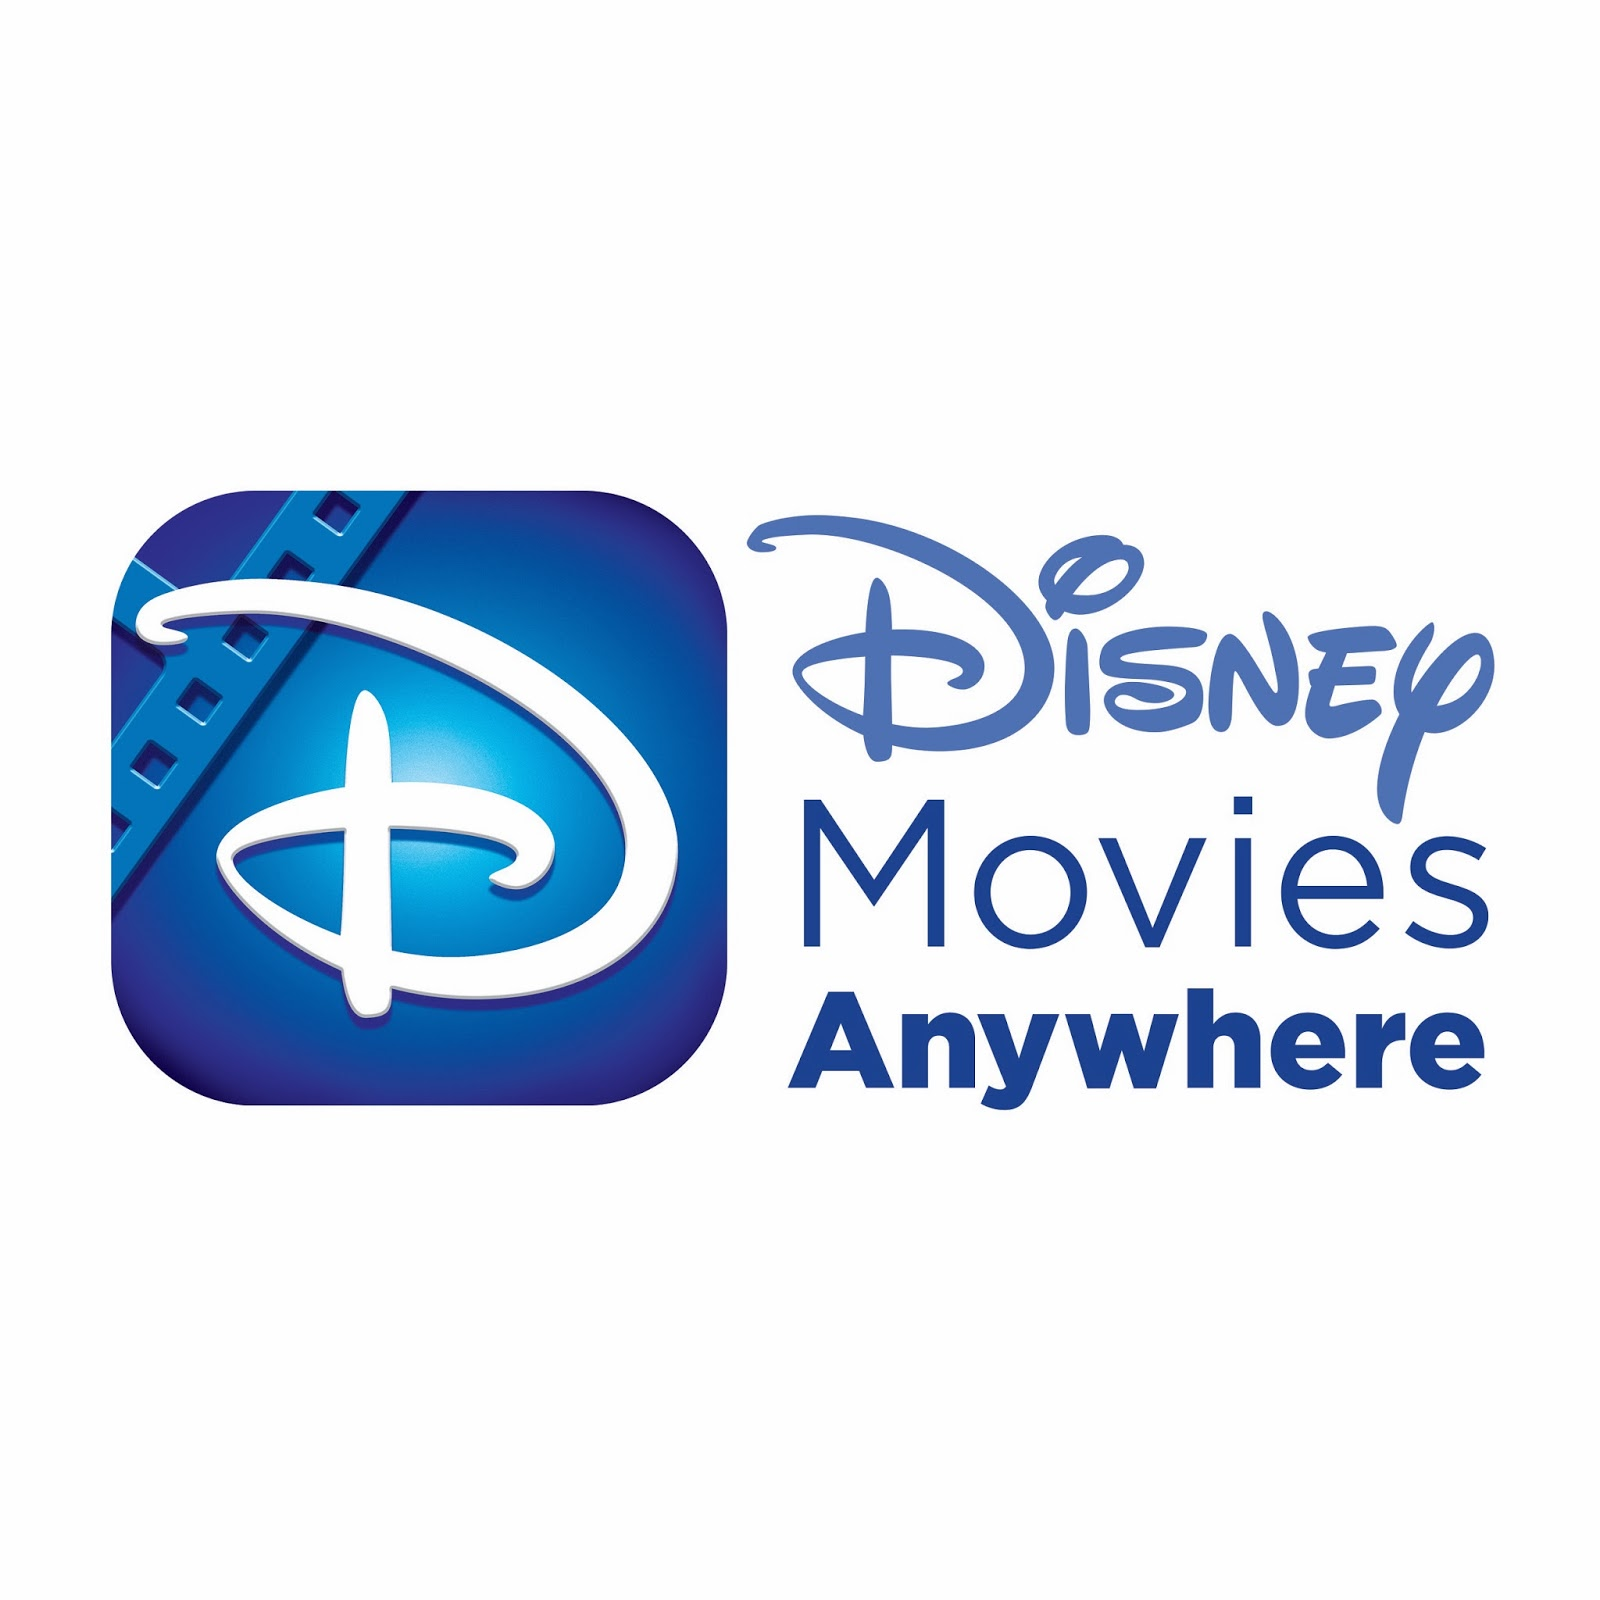 The Walt Disney Studios announces Disney Movies Anywhere, a new digital movie service and app.